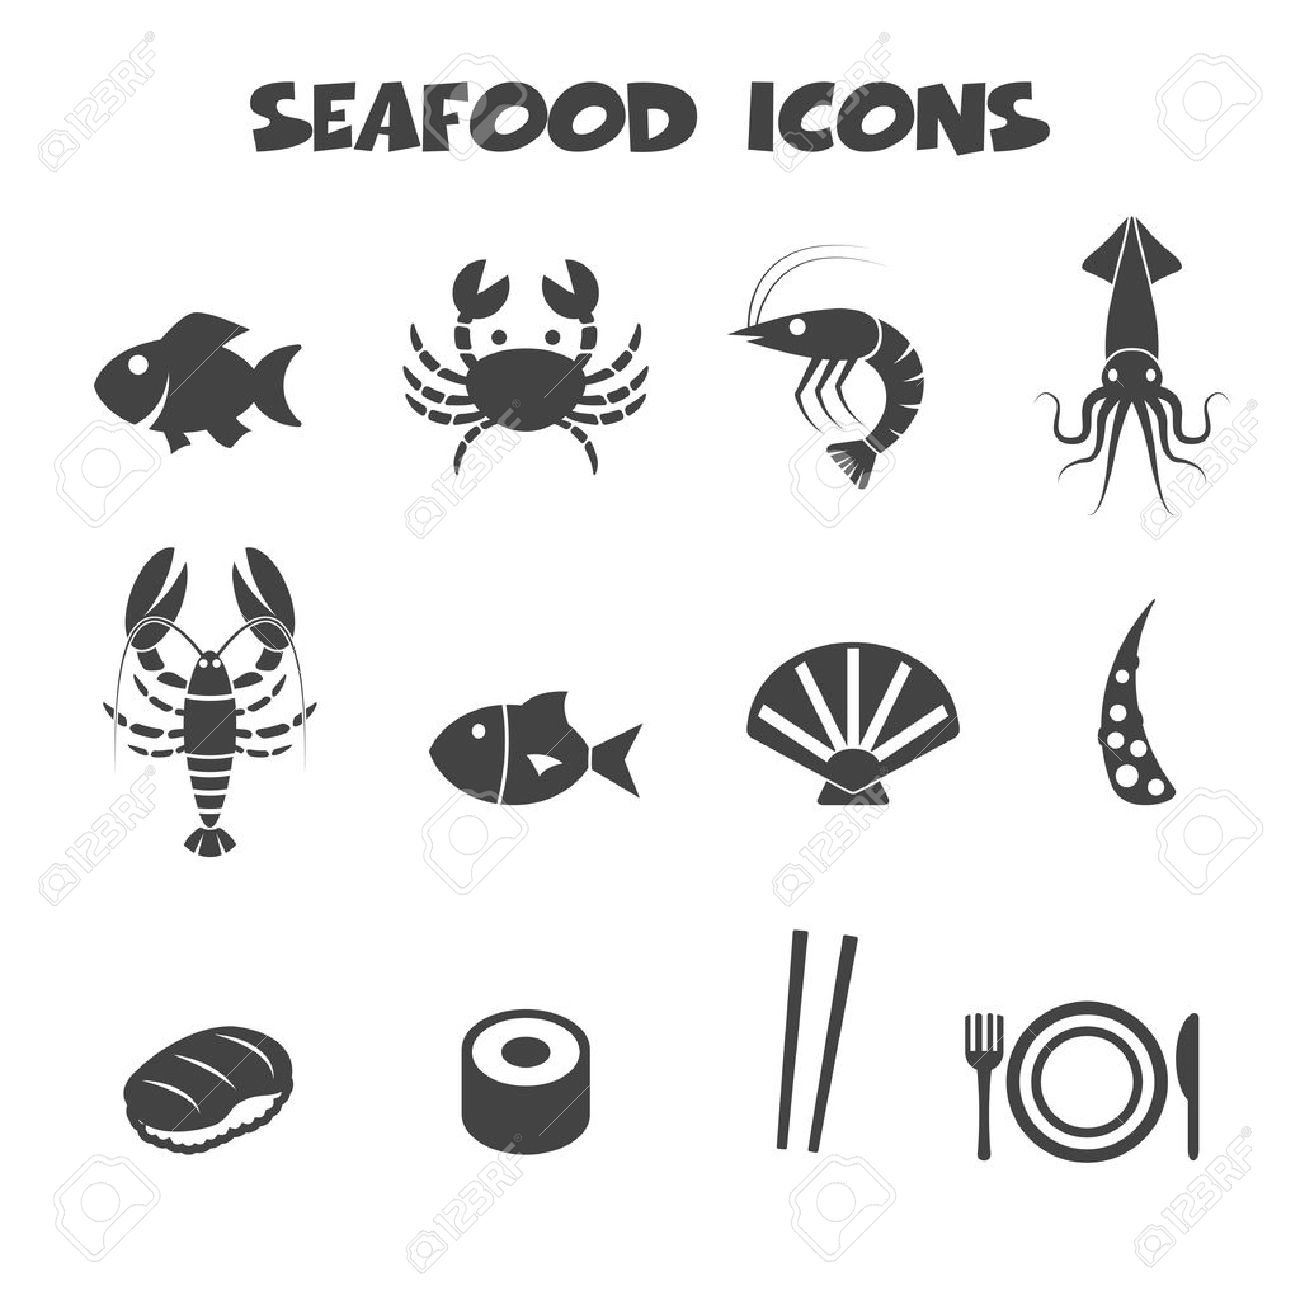 Seafood icons symbols royalty free cliparts vectors and stock seafood icons symbols stock vector 26617872 biocorpaavc Images